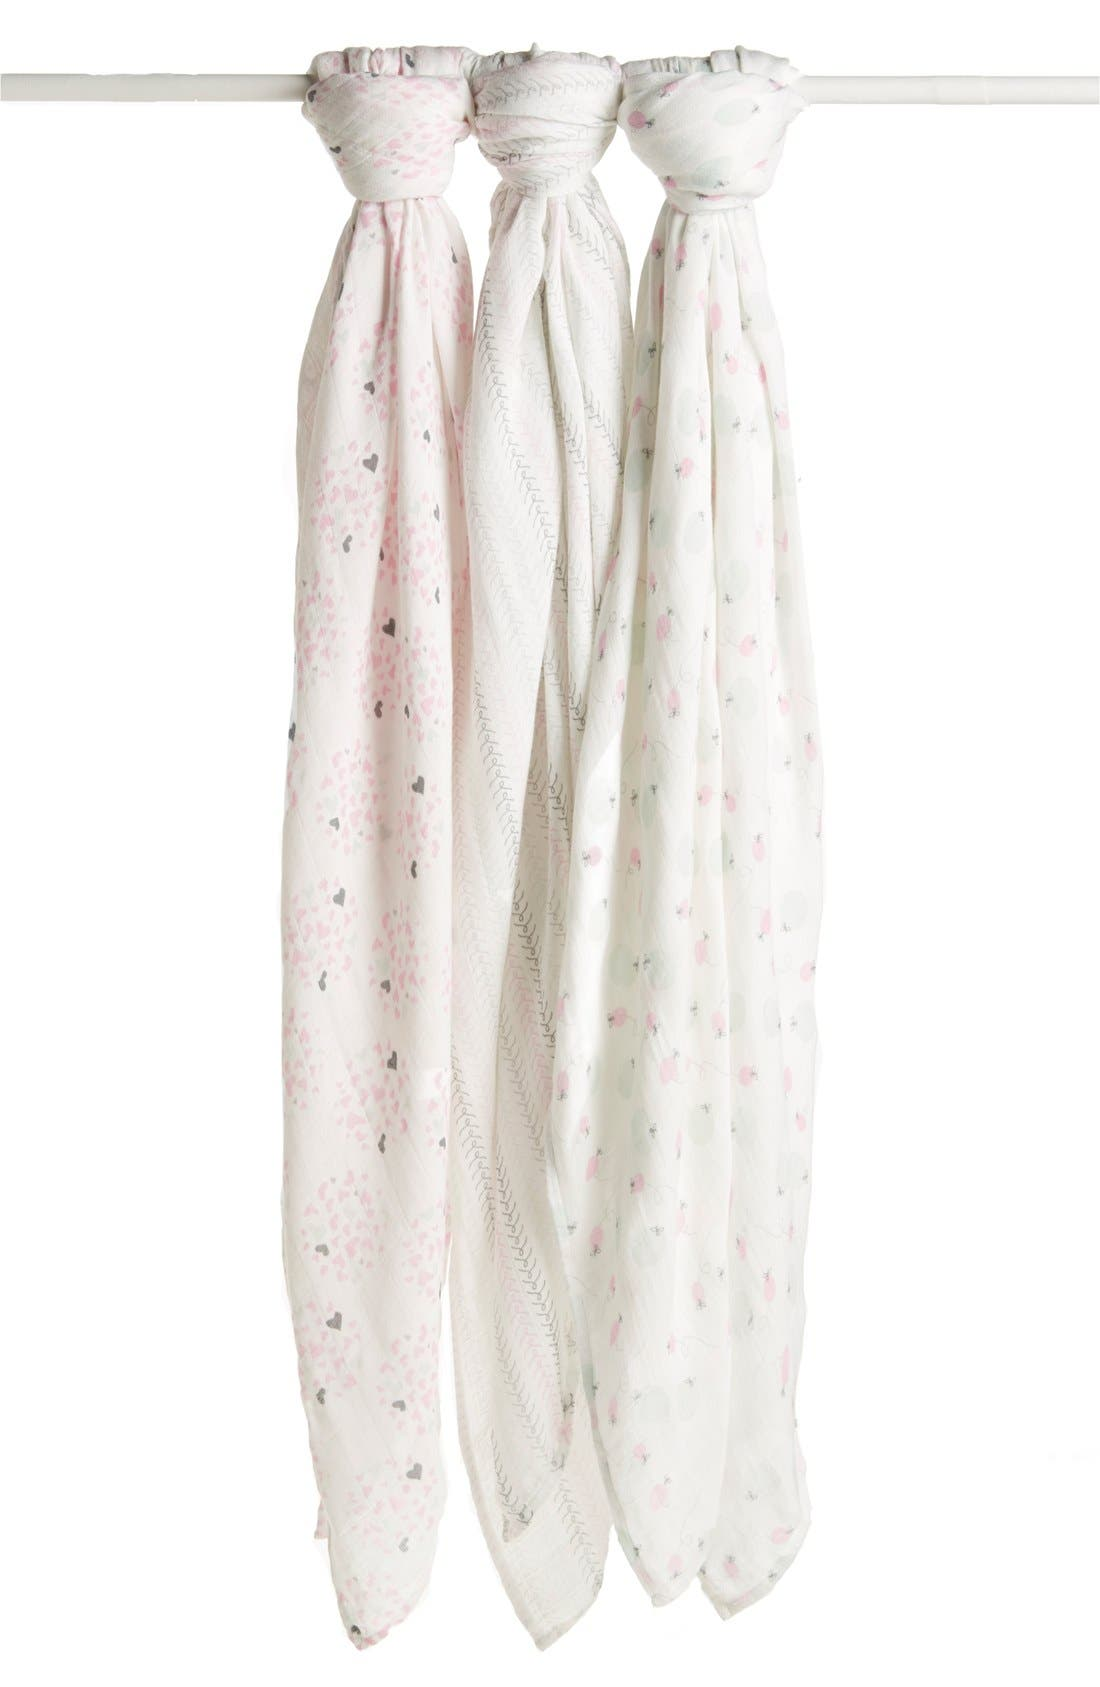 Alternate Image 3  - aden + anais 'Hearts & Fireflies' Swaddling Cloths (3-Pack) (Nordstrom Exclusive)